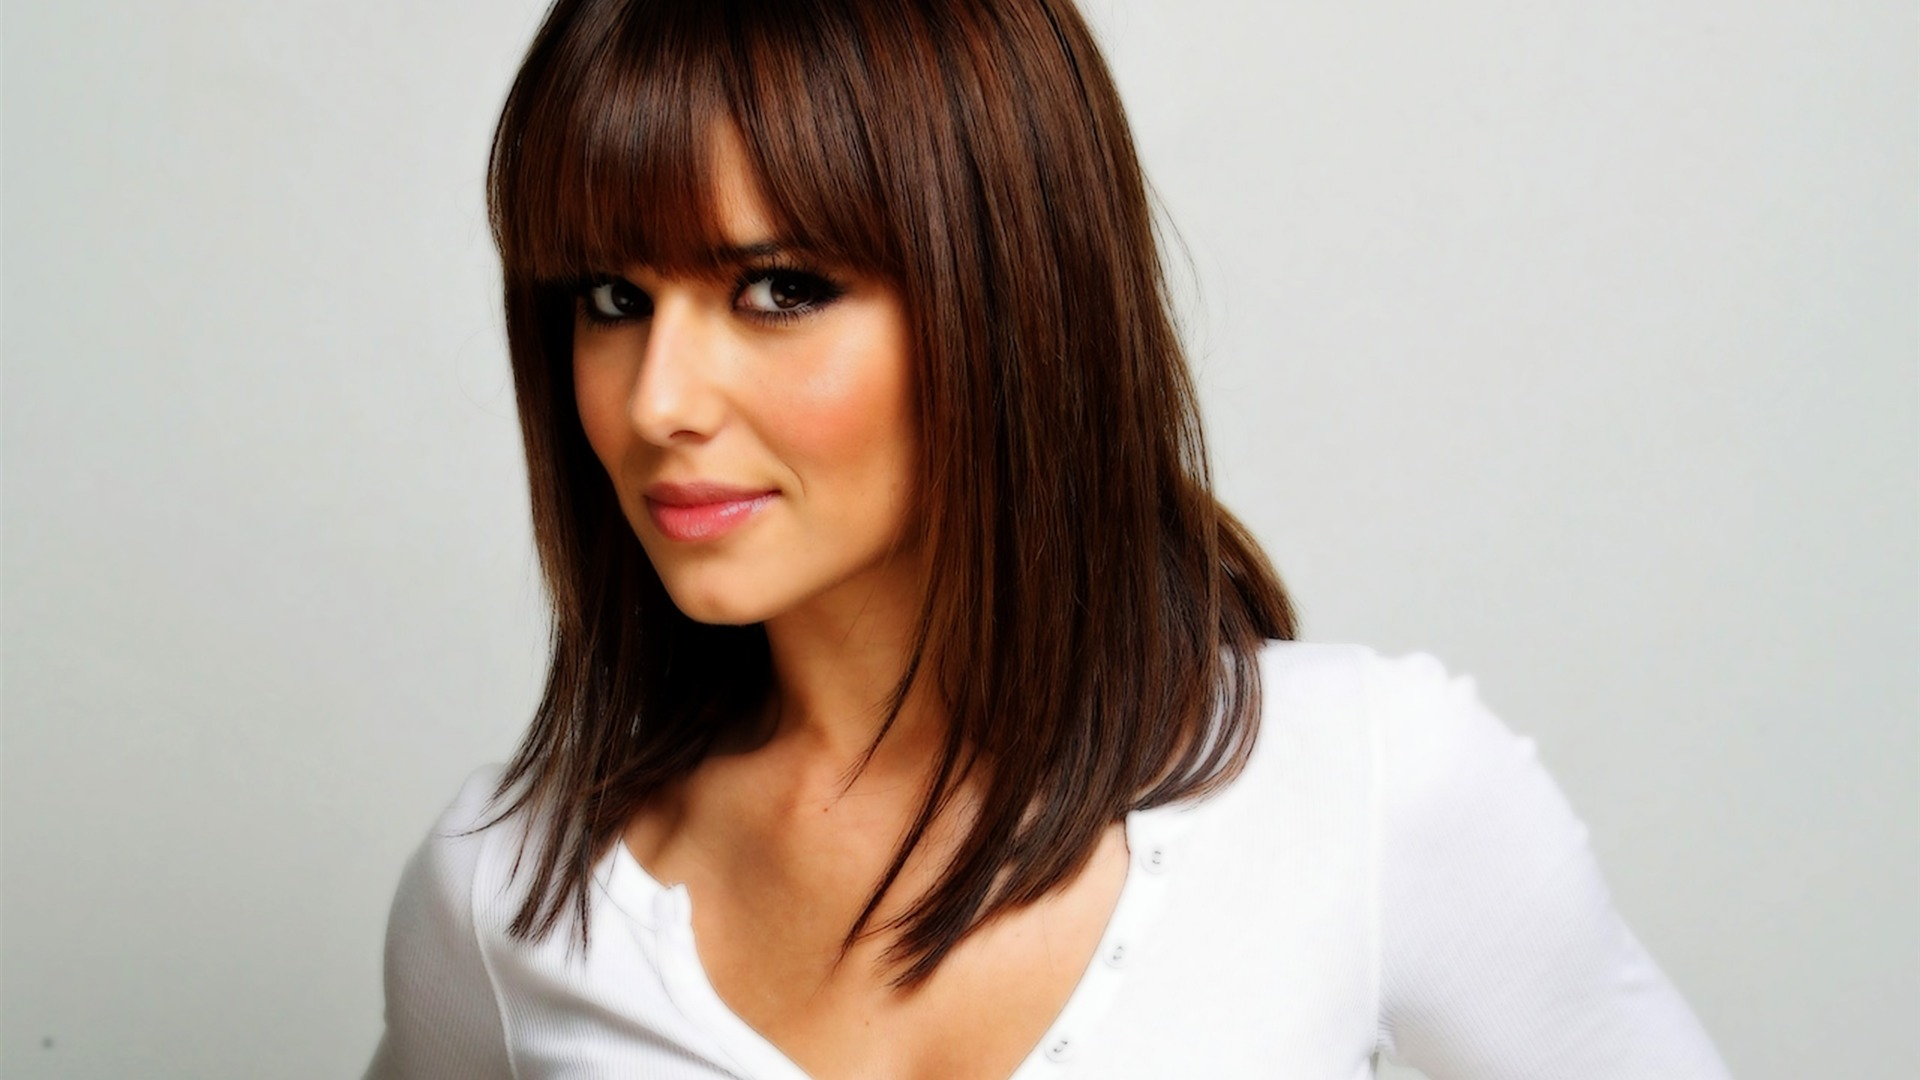 ... Cheryl Cole wallpapers / Wallpaper Download - Cheryl Cole #018 Cheryl Cole